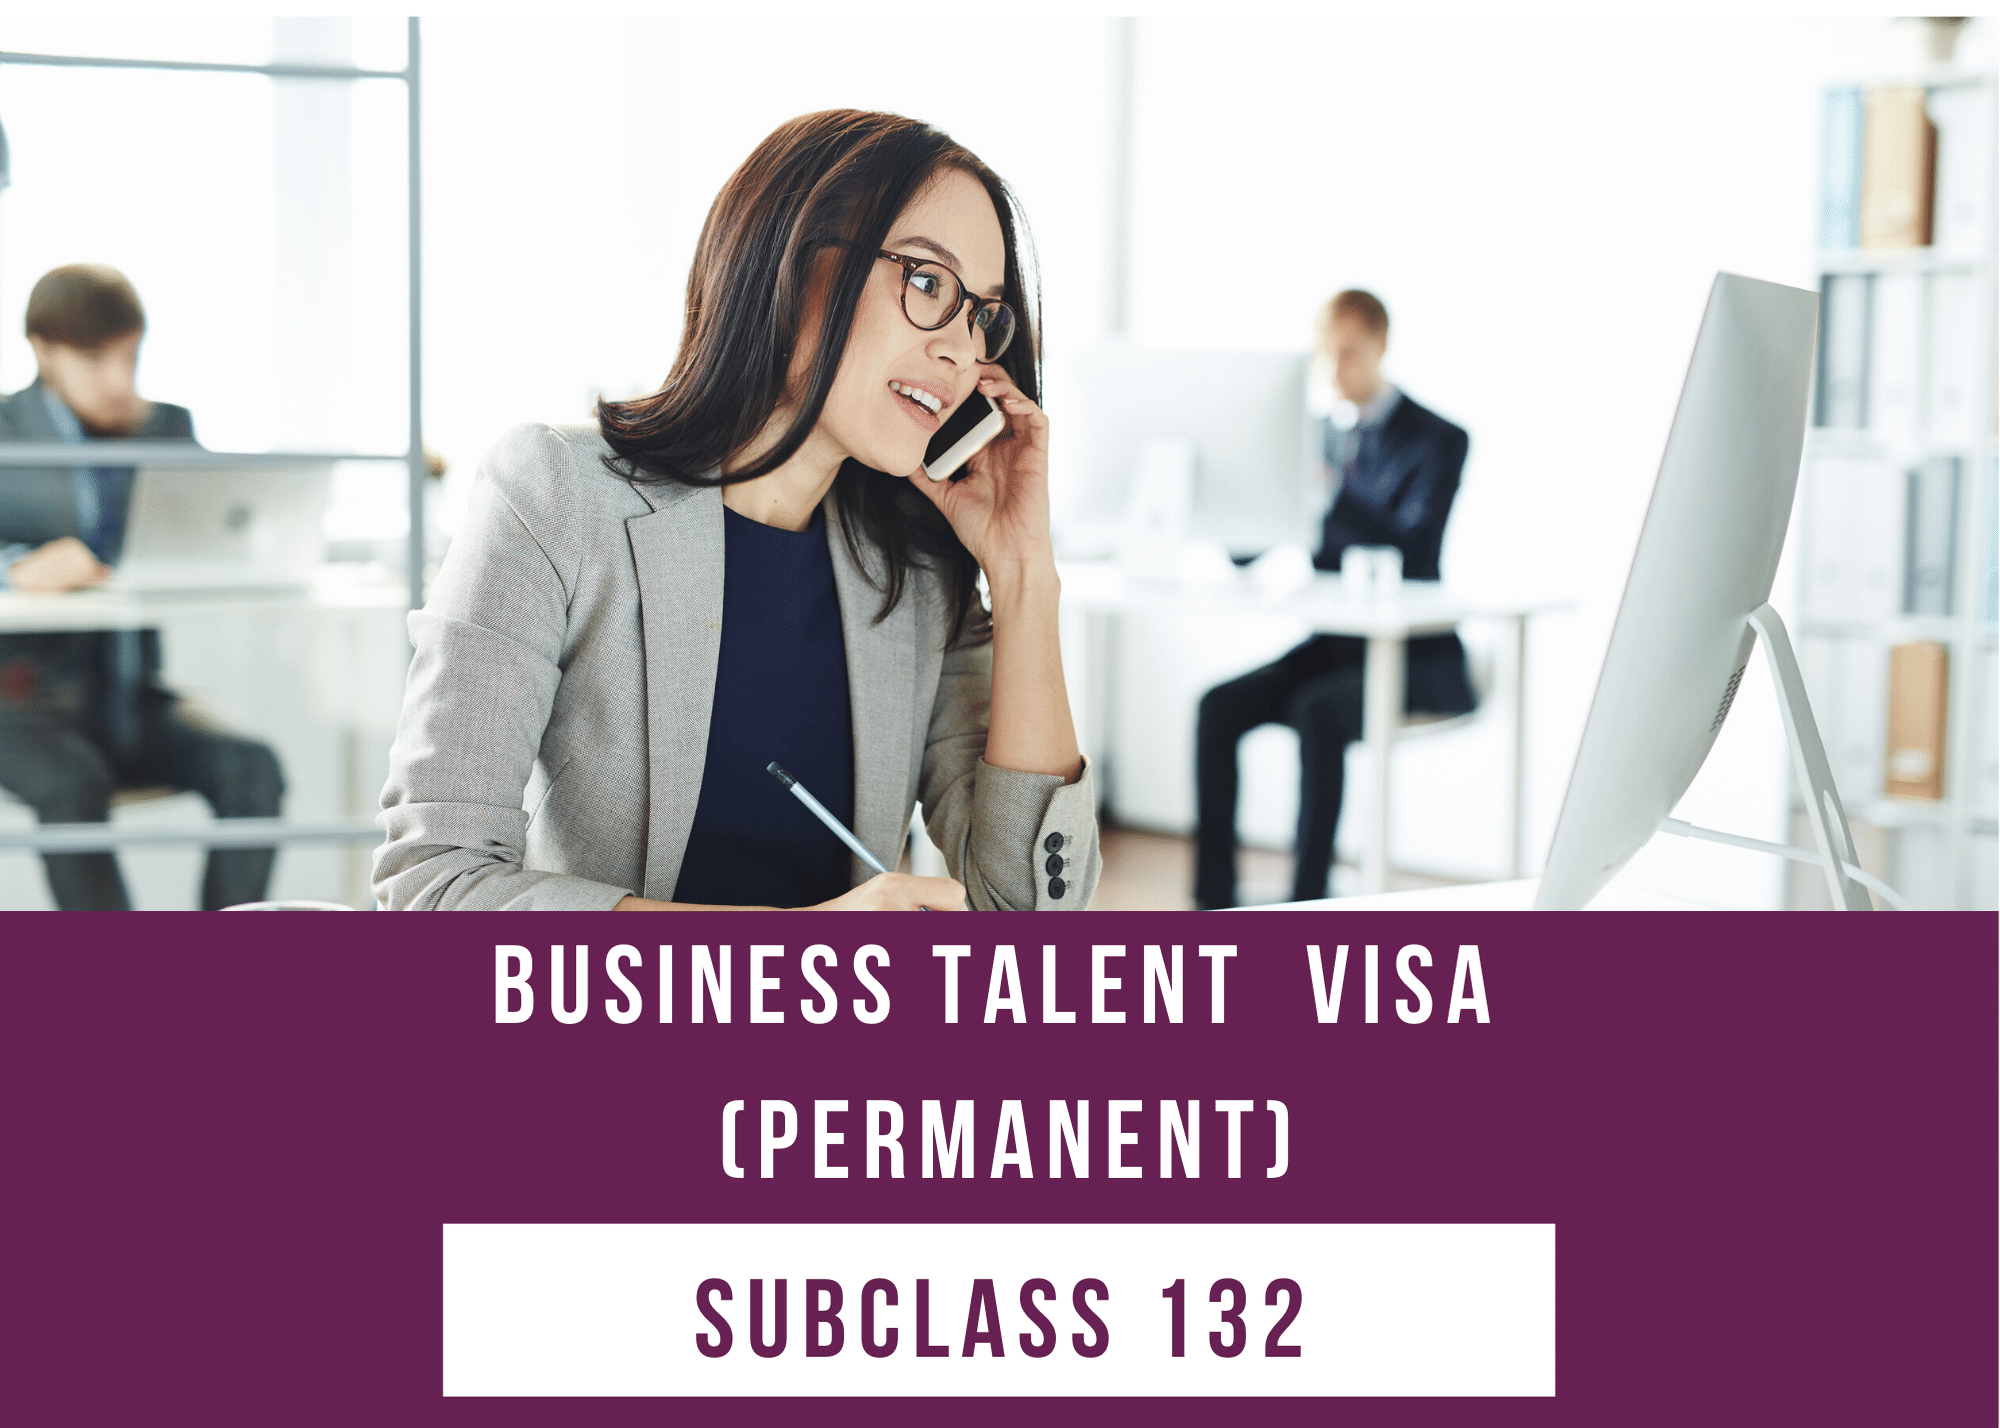 business-innovation-investment-visa-subclass-132